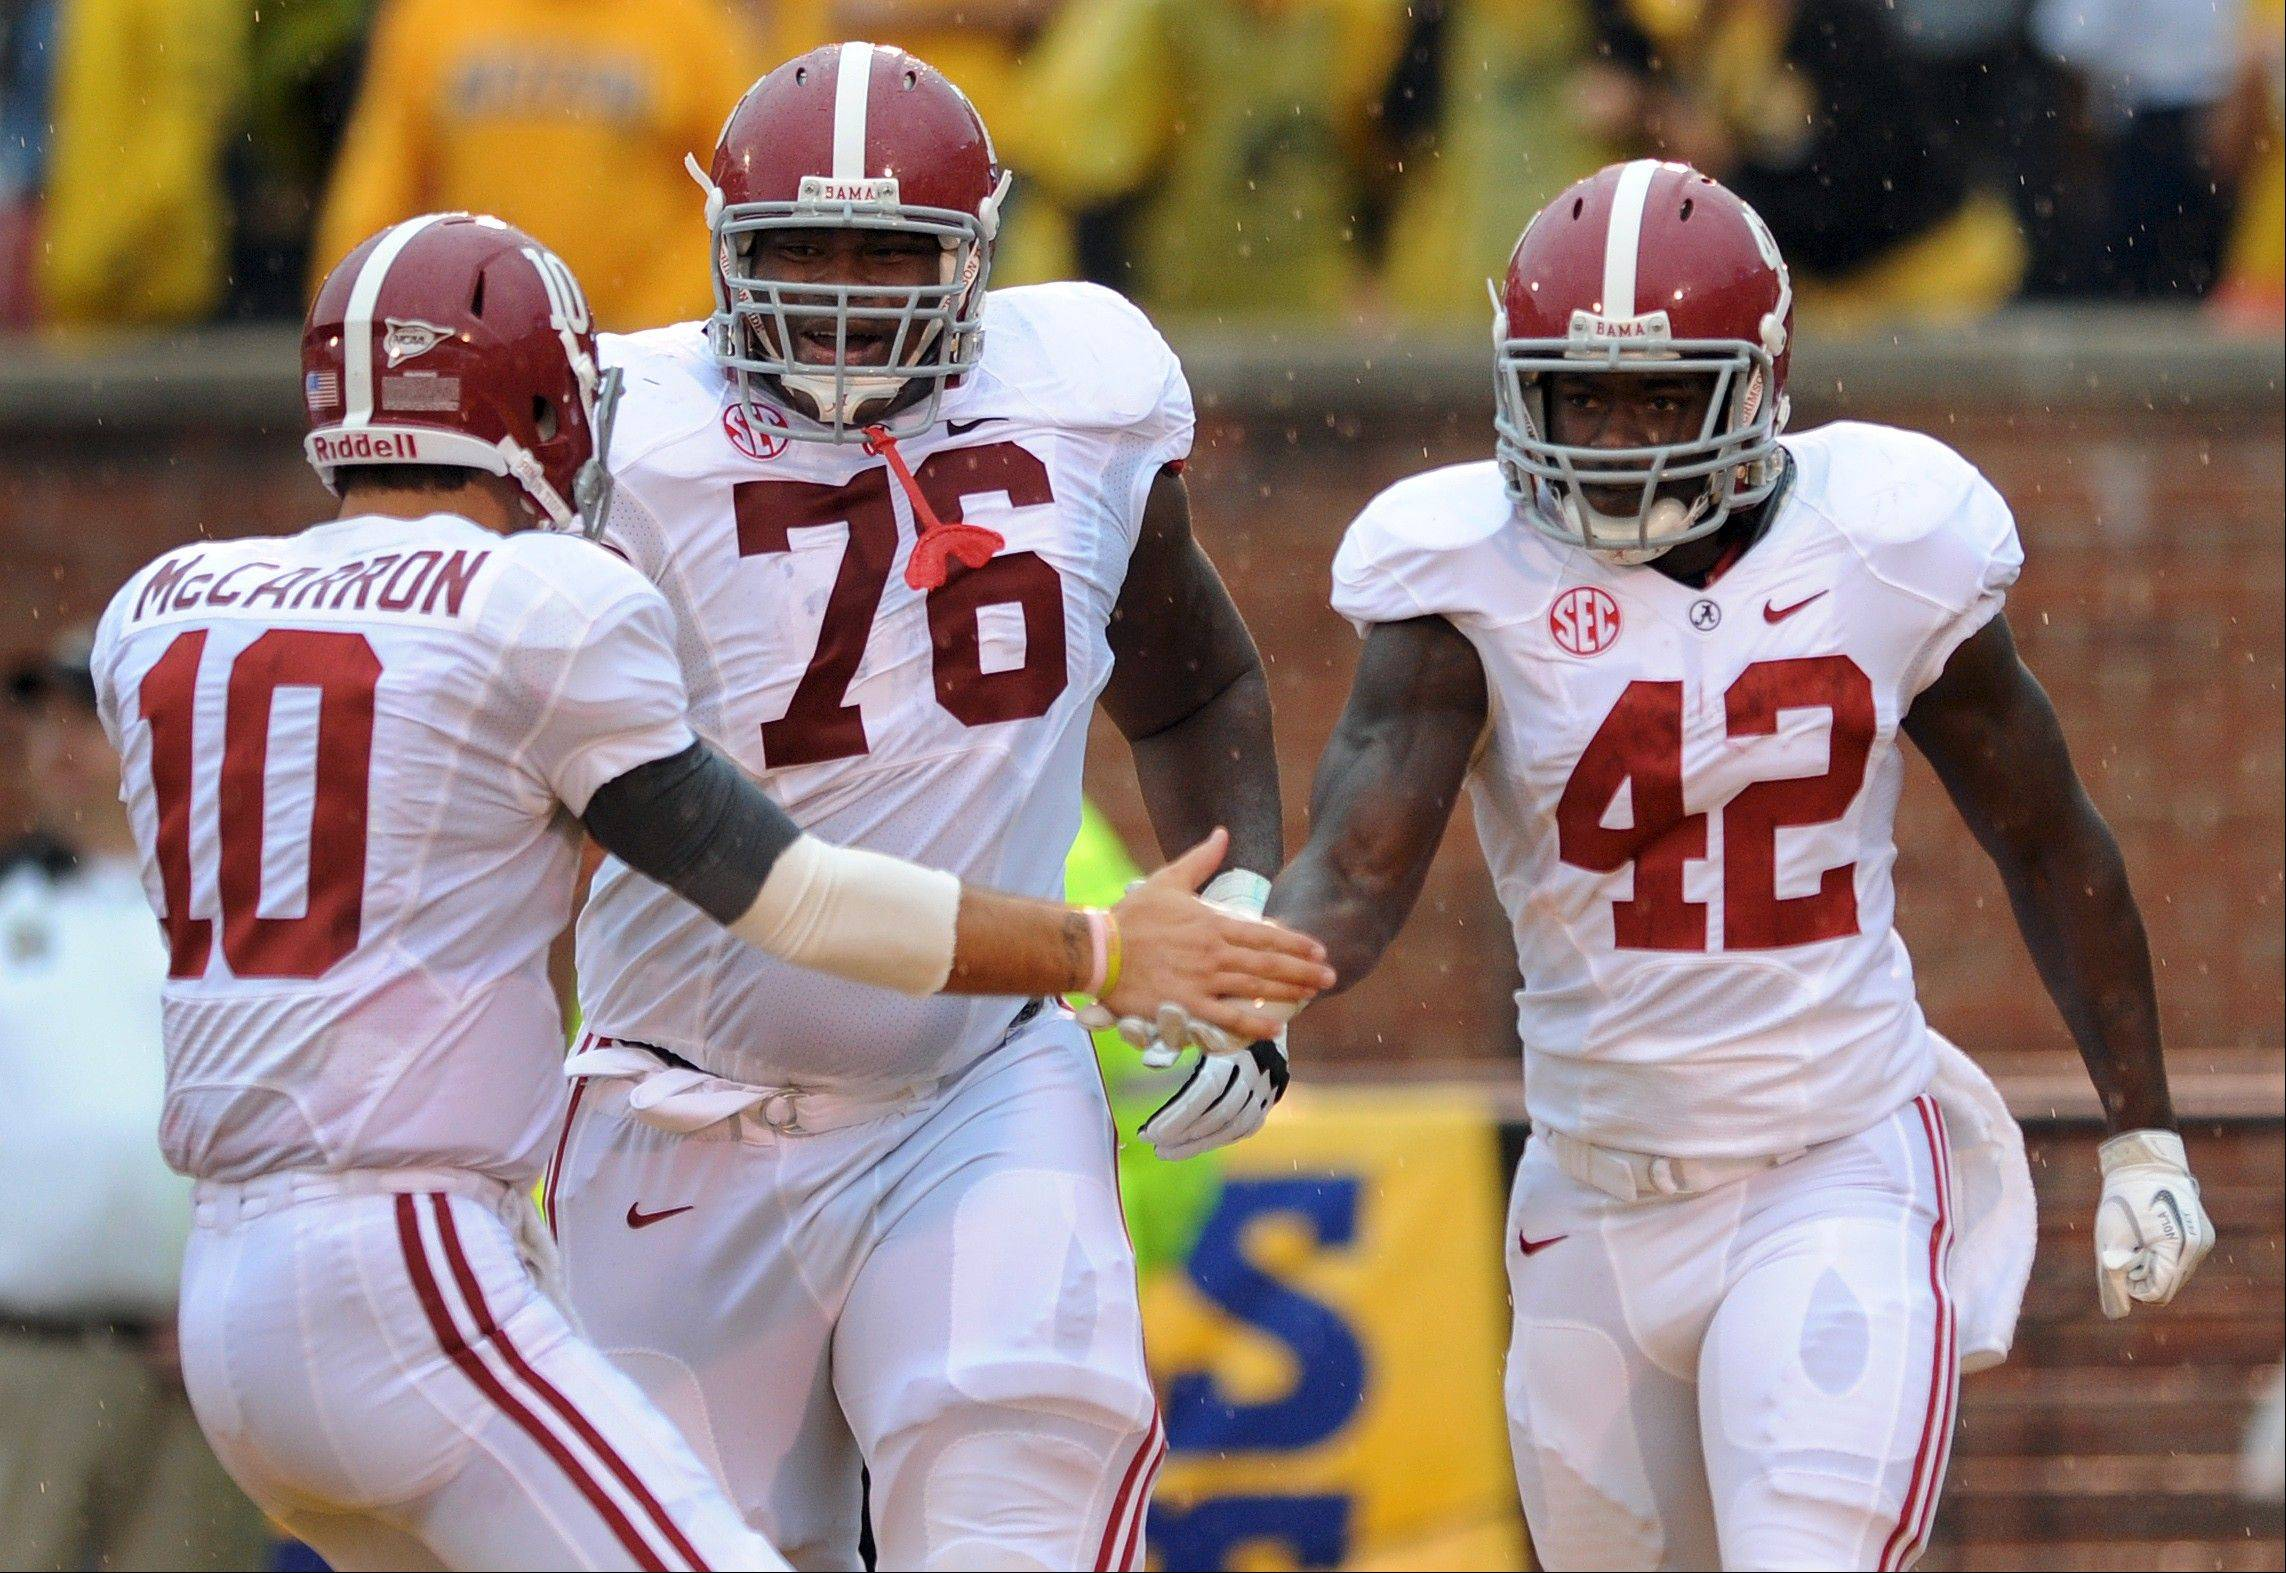 Alabama offensive lineman D.J. Fluker (76) is projected on some NFL mock draft boards to be a first-round pick for the Chicago Bears, who also have needs at tight end and defensive line.